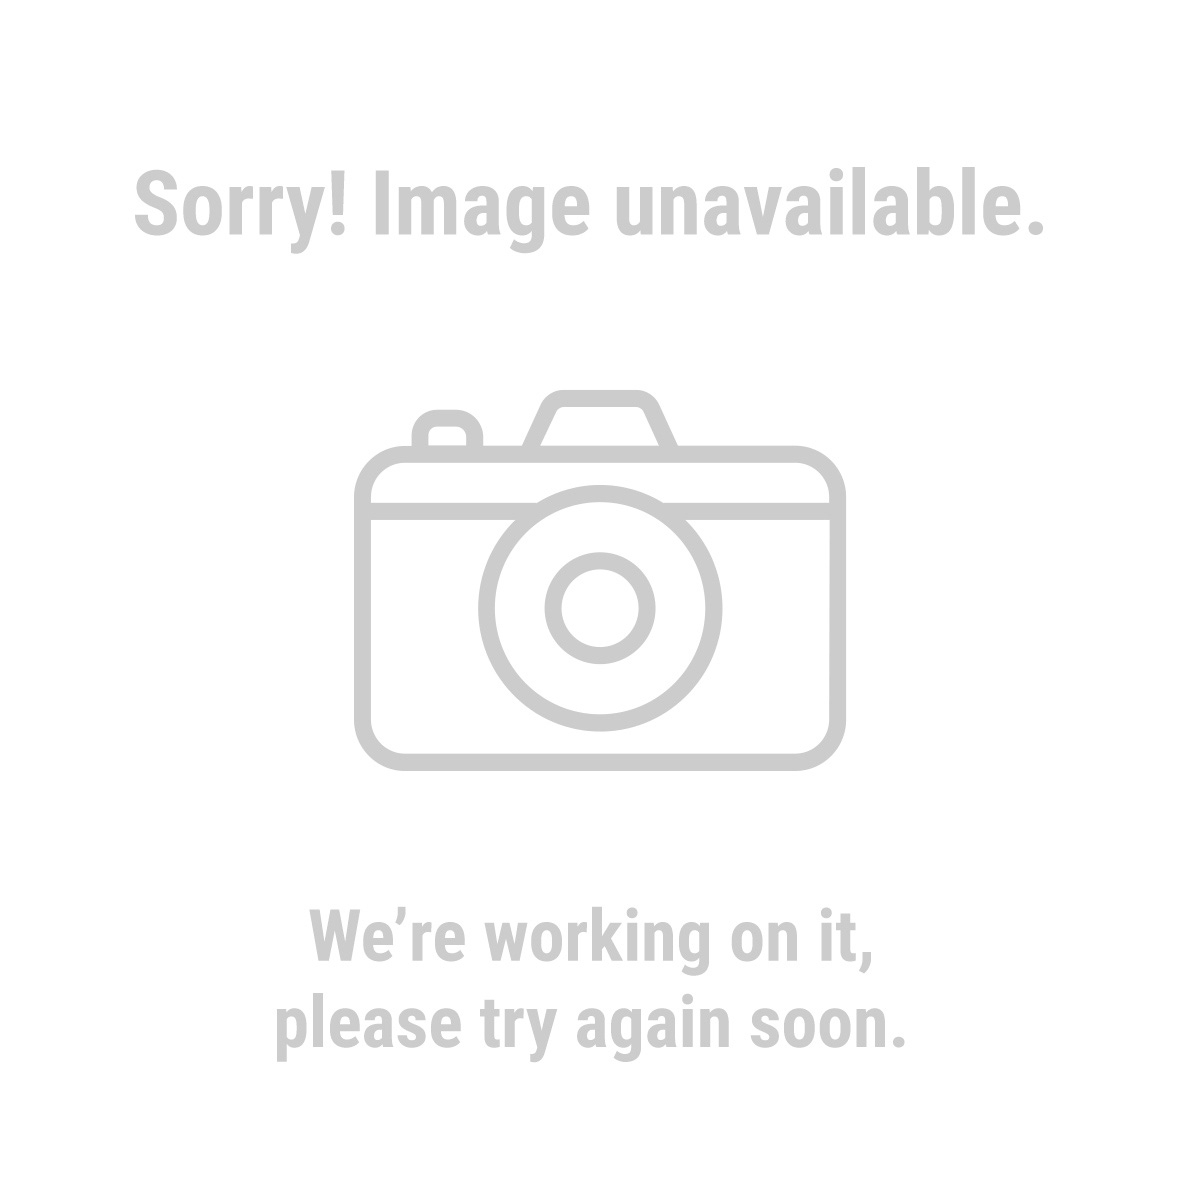 Haul-Master® 60623 Two Bike Hitch Mount Bike Rack